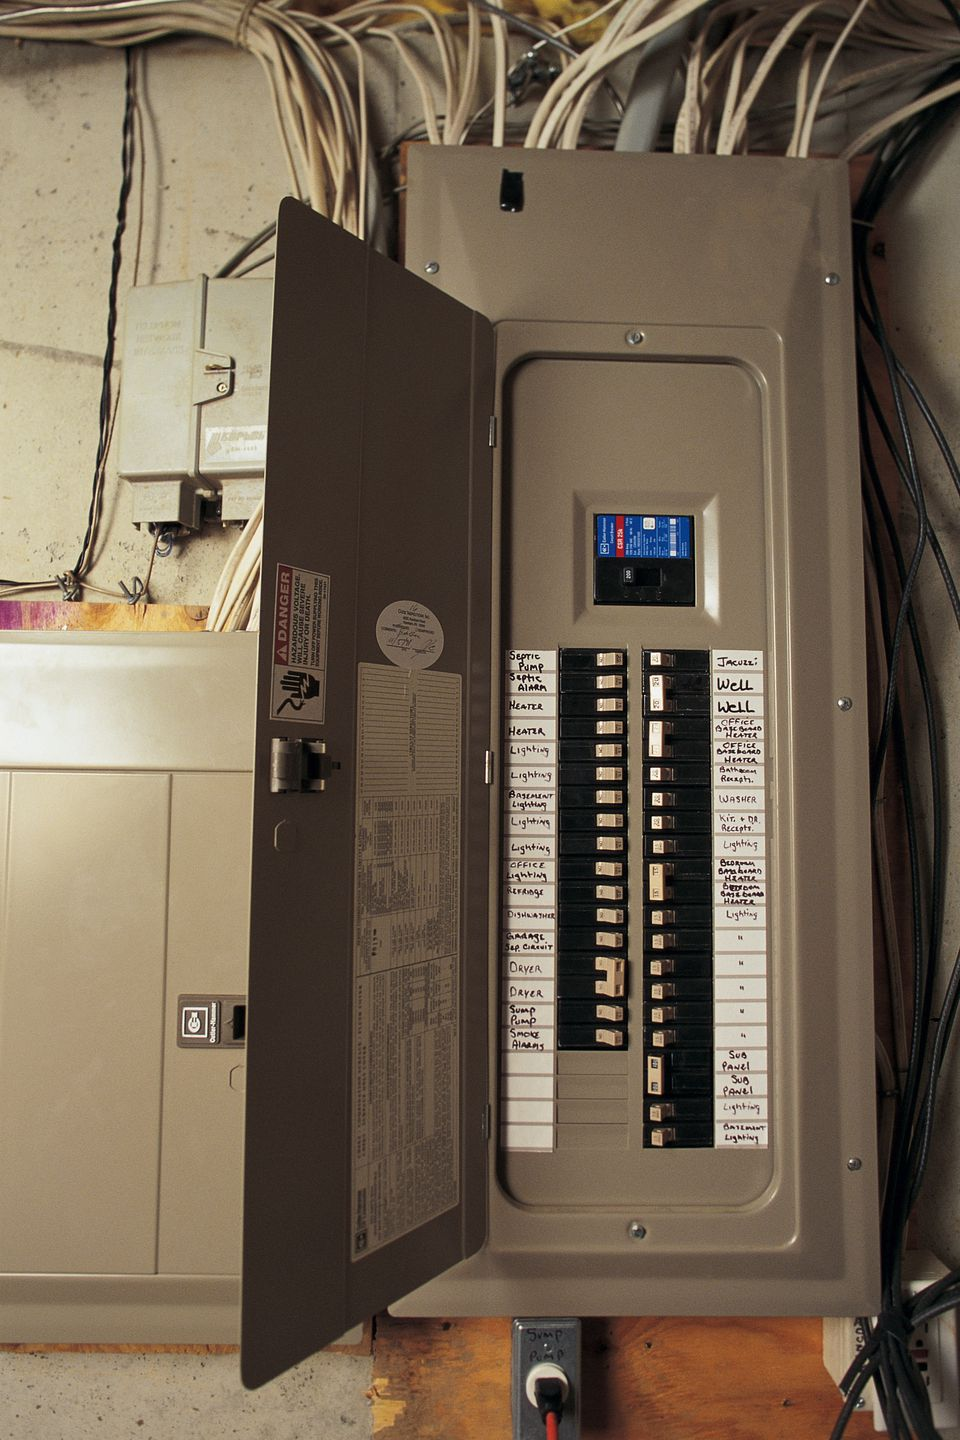 Fuse Box Or Circuit Breaker Panel : Circuit breaker boxes service panel checklist